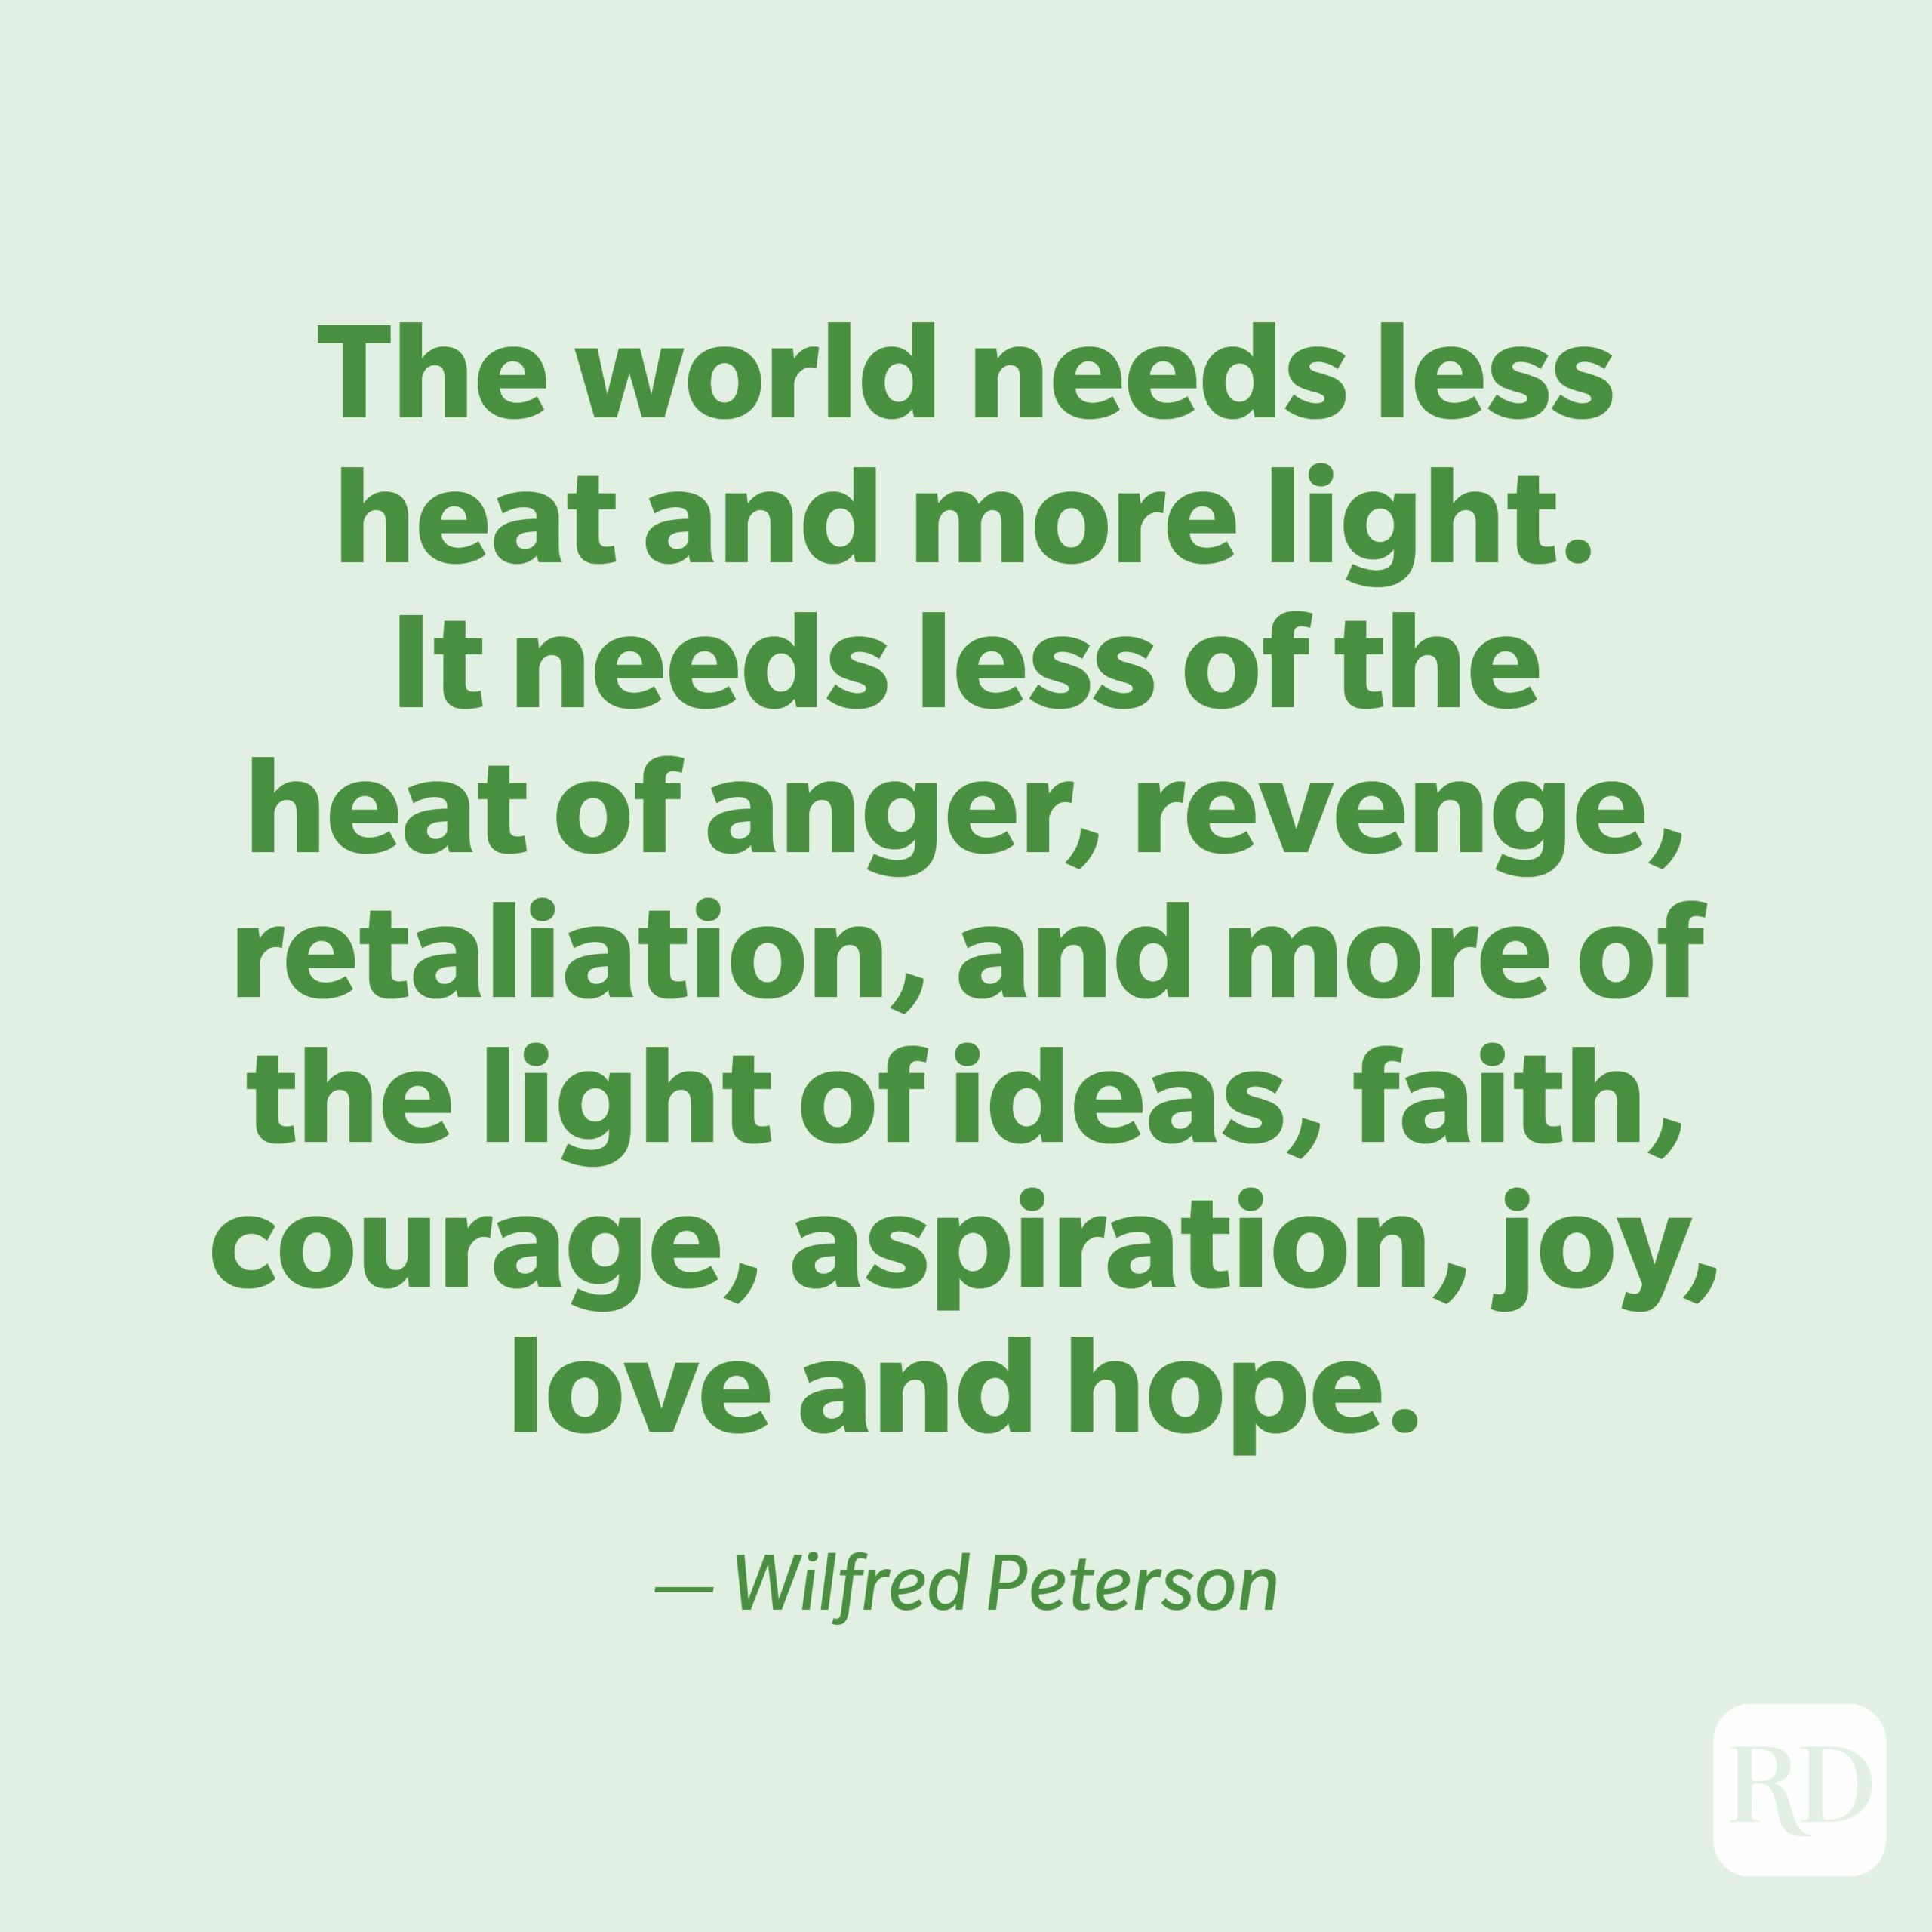 """""""The world needs less heat and more light. It needs less of the heat of anger, revenge, retaliation, and more of the light of ideas, faith, courage, aspiration, joy, love and hope."""" —Wilfred Peterson"""